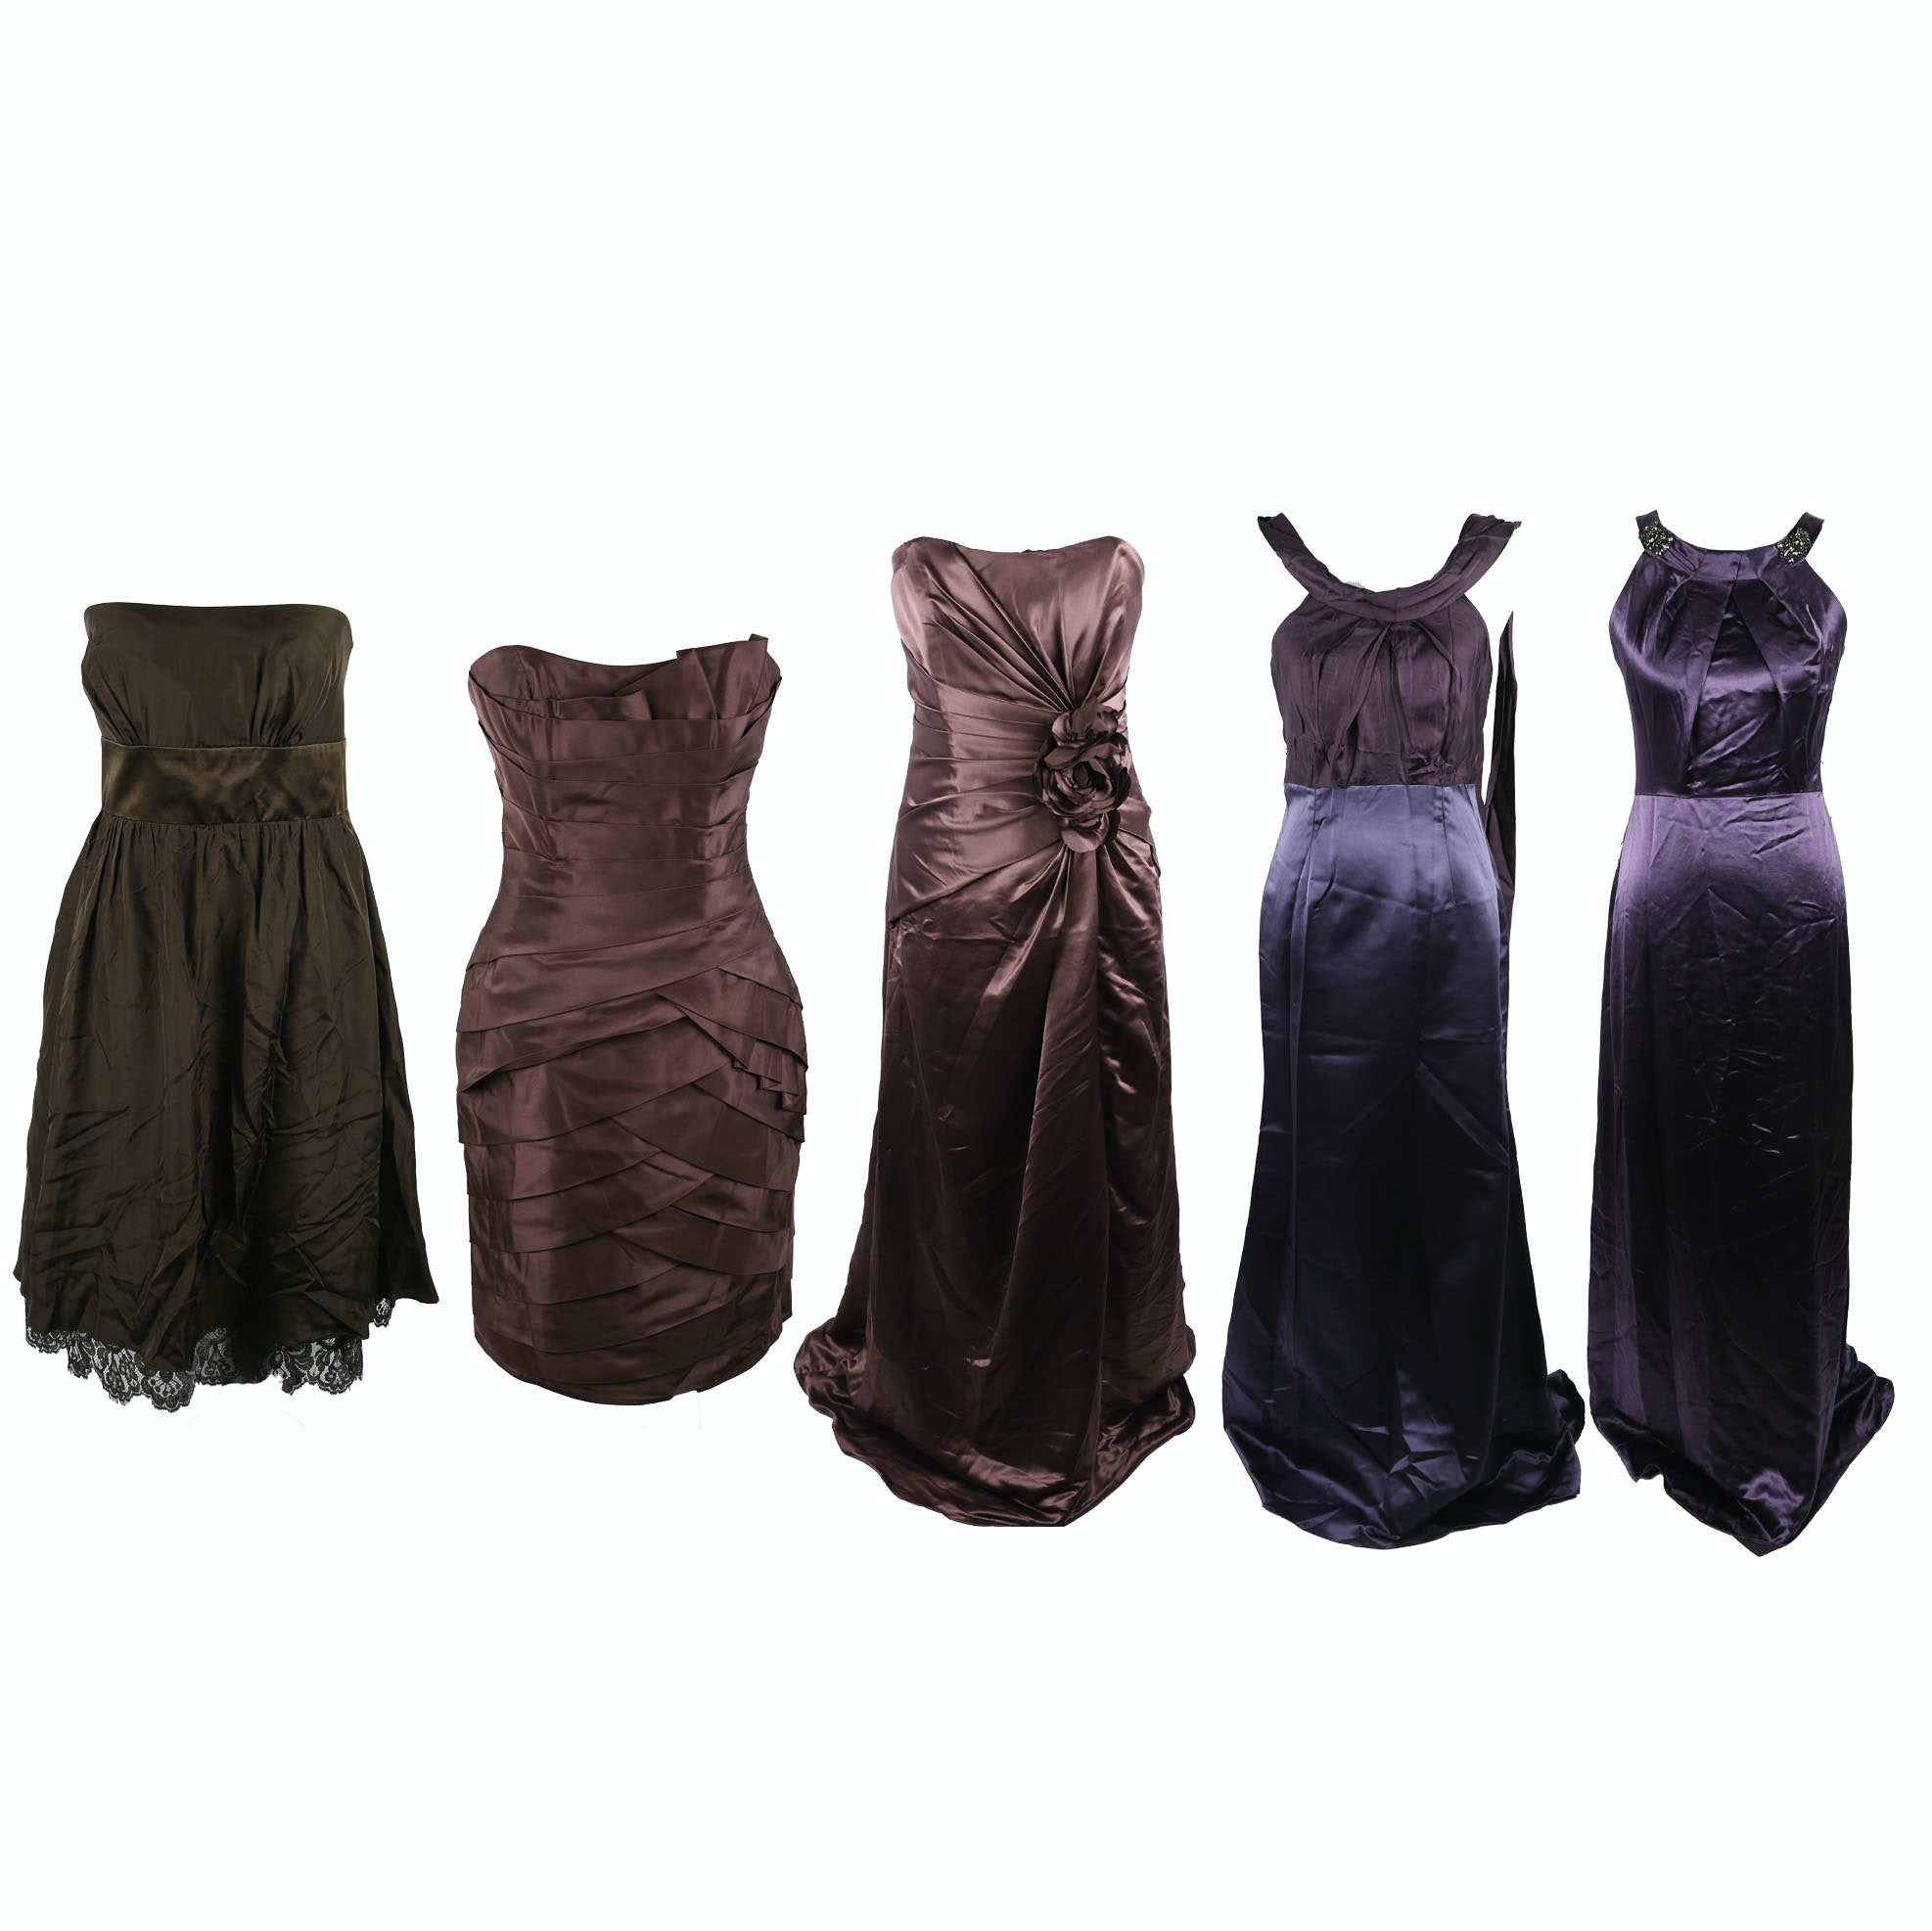 Designer Bridesmaids Dresses featuring Vera Wang